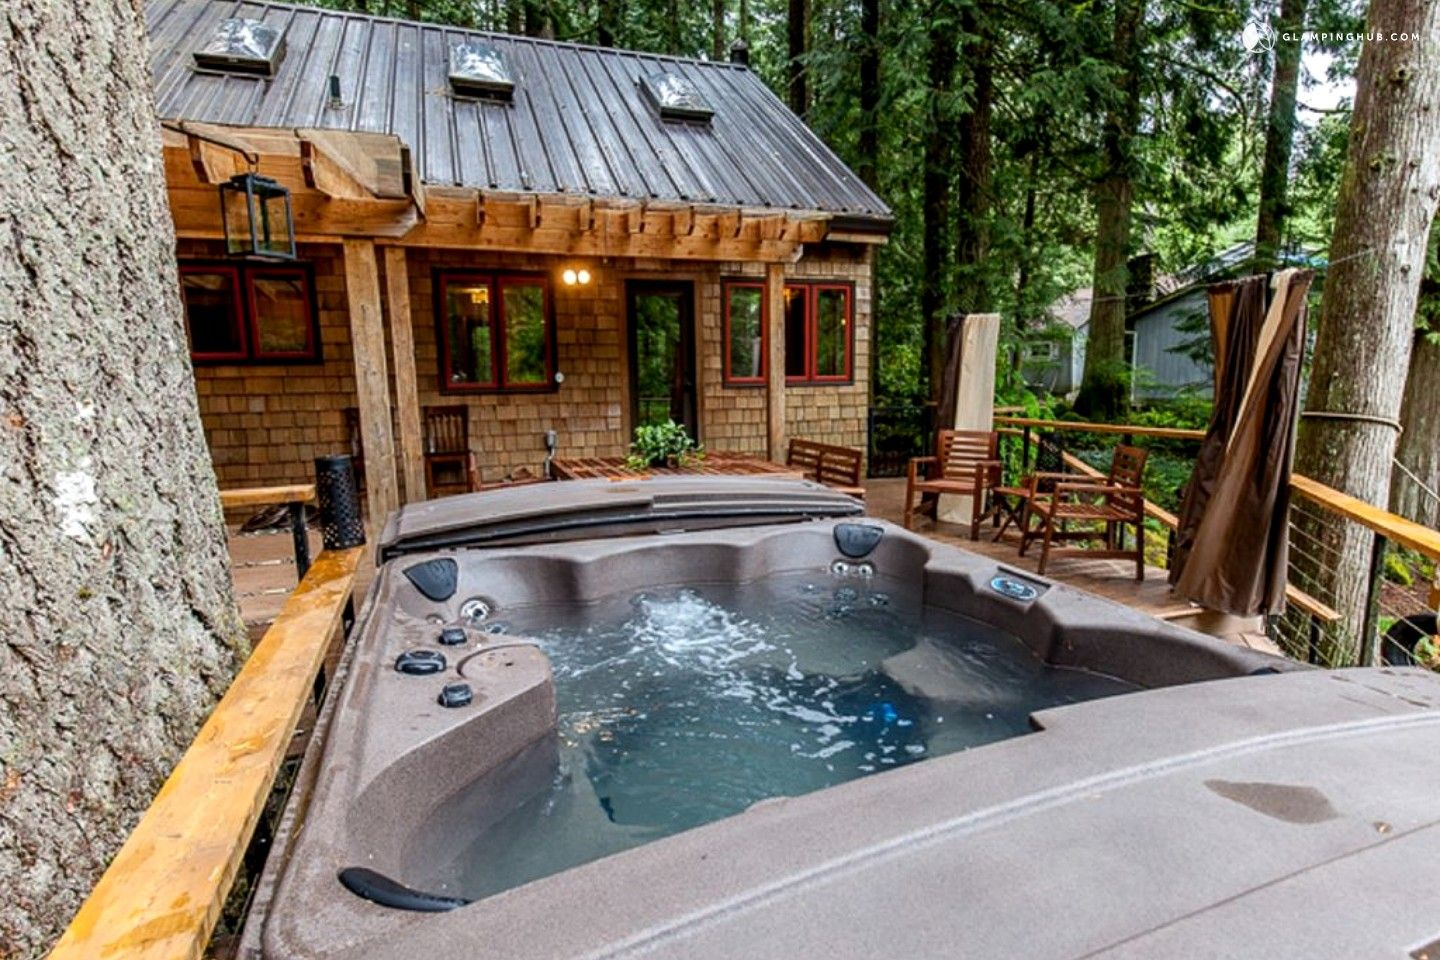 Rhododendron Or 159 Fully Furnished Cabin Rental With Outdoor Hot Tub In Mount Hood National Forest Hot Tub Outdoor Hot Tub Cabin Rentals